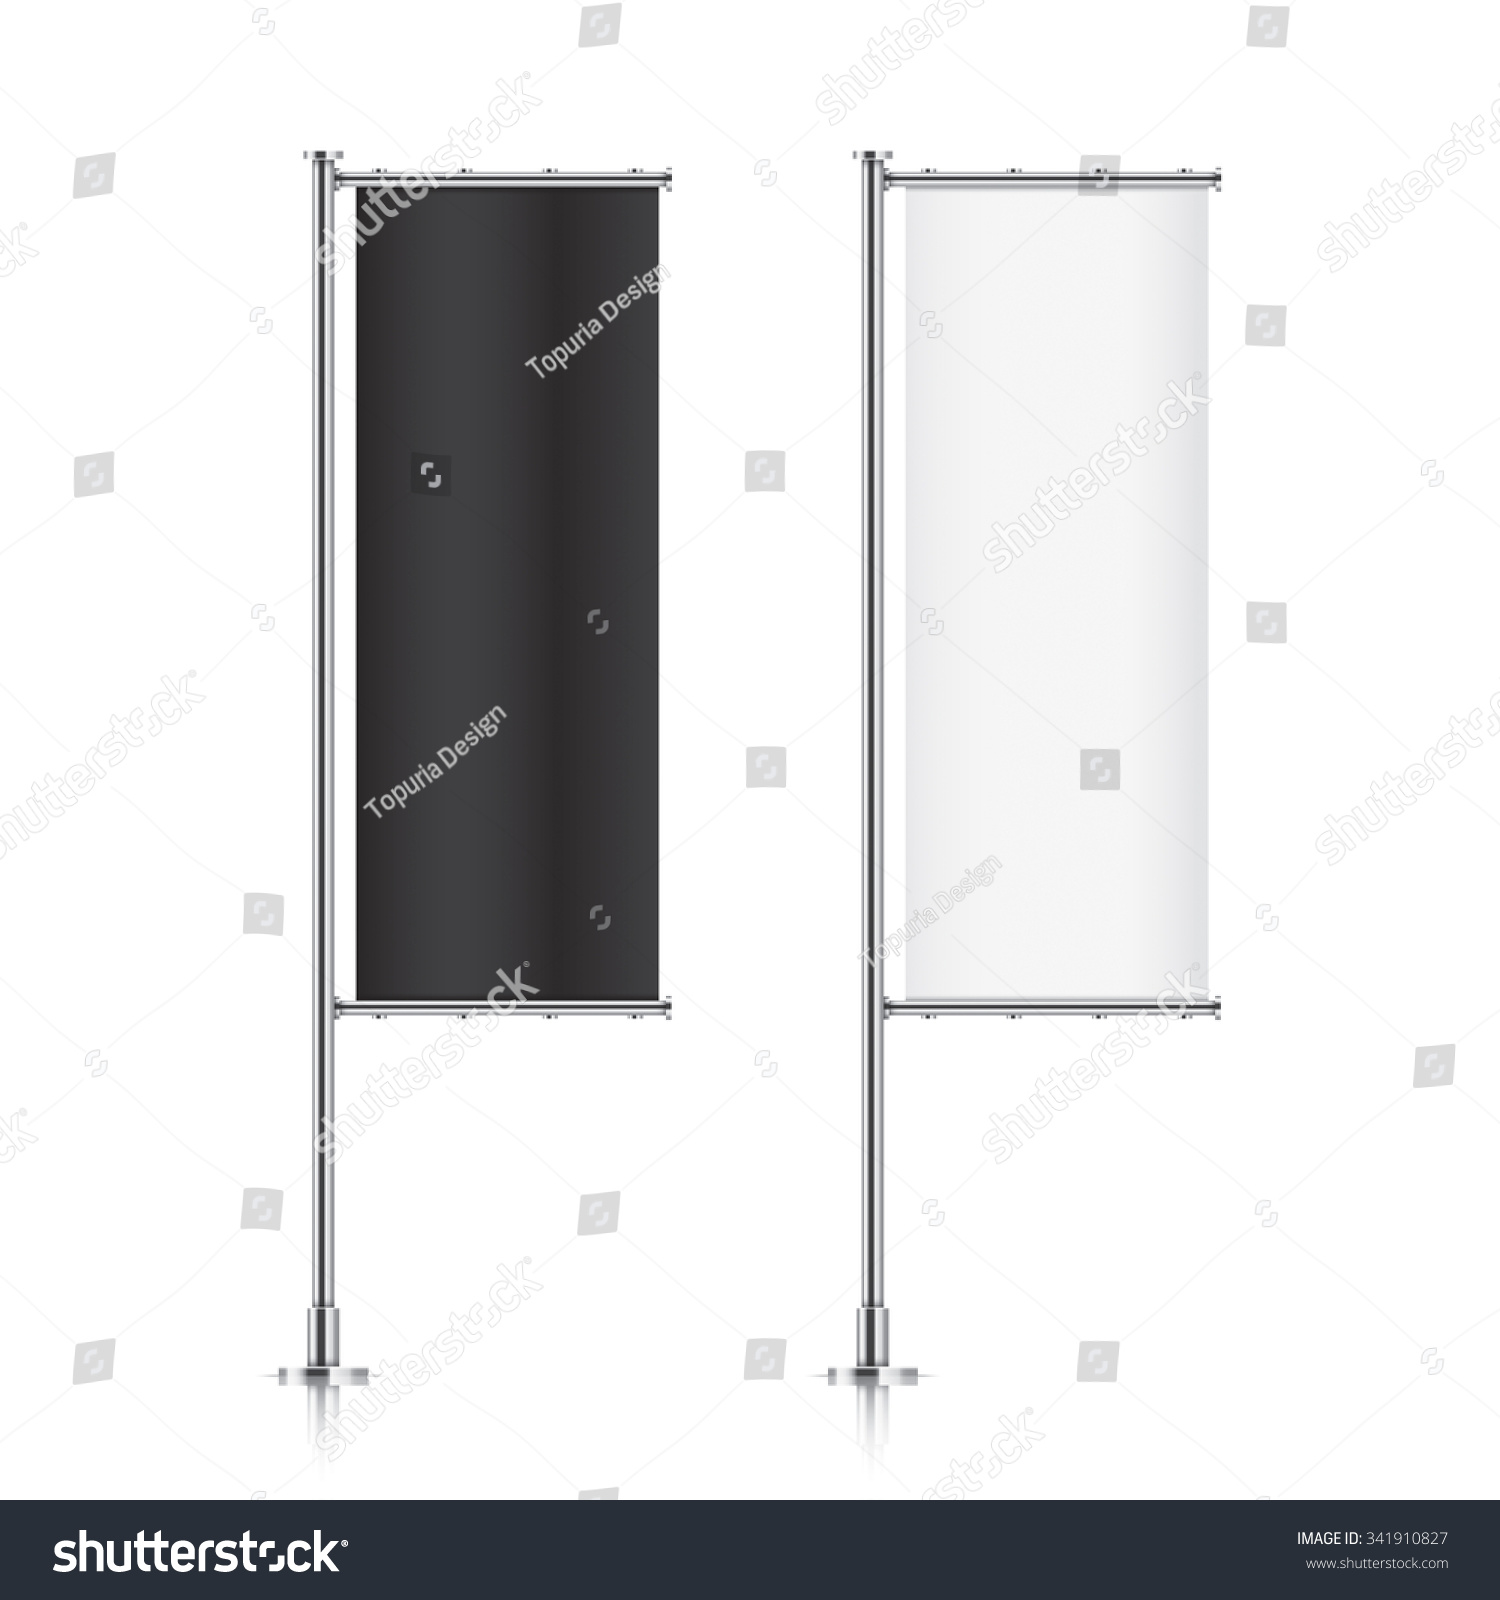 Fabric Exhibition Stand Mockup : Flag mockup banner templates set stock vector